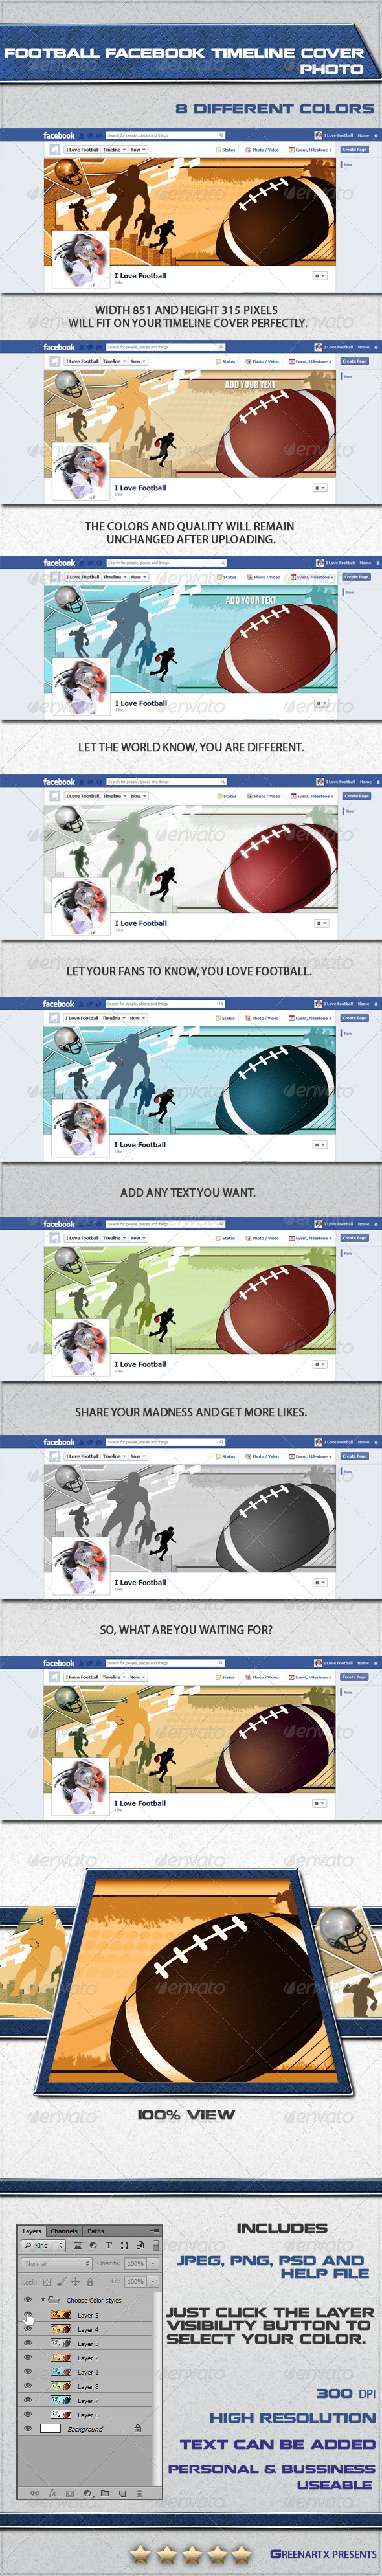 GraphicRiver Football FB Timeline Cover Photo 3703676